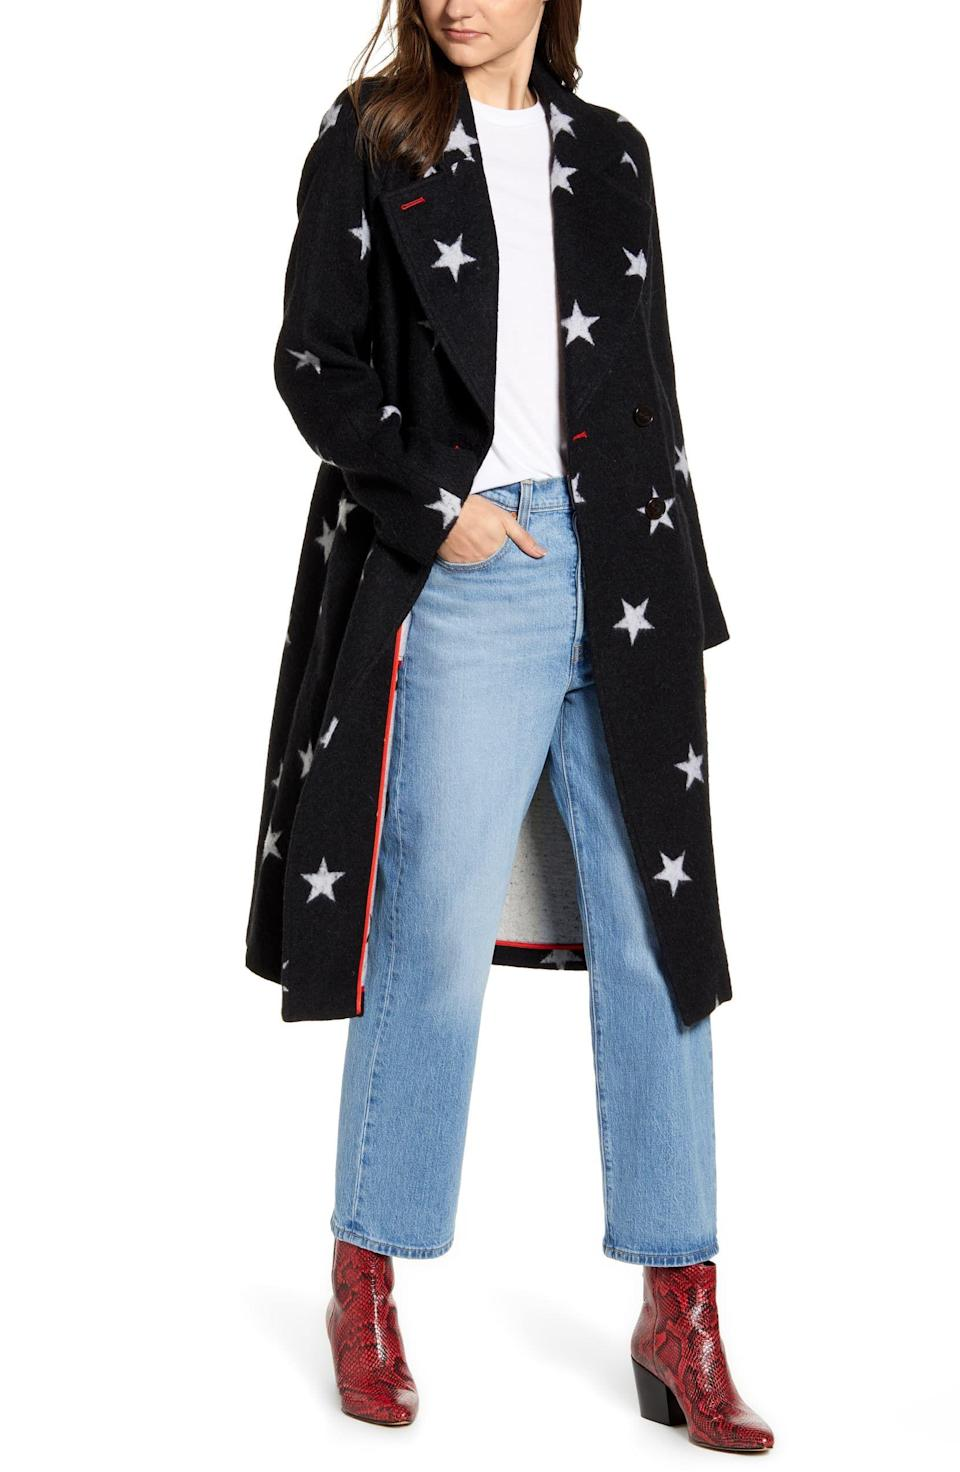 """<p><strong>AVEC LES FILLES</strong></p><p>nordstrom.com</p><p><strong>$189.90</strong></p><p><a href=""""https://go.redirectingat.com?id=74968X1596630&url=https%3A%2F%2Fshop.nordstrom.com%2Fs%2Favec-les-filles-star-double-face-trench-coat%2F5272082&sref=http%3A%2F%2Fwww.cosmopolitan.com%2Fstyle-beauty%2Ffashion%2Fg30057282%2Fshop-nordstrom-black-friday-cyber-monday-sale-2019%2F"""" rel=""""nofollow noopener"""" target=""""_blank"""" data-ylk=""""slk:Shop Now"""" class=""""link rapid-noclick-resp"""">Shop Now</a></p><p>While everyone is rocking teddy coats this winter, you'll definitely stand out in a star-printed trench coat that has hidden pockets and contrast lining. </p>"""